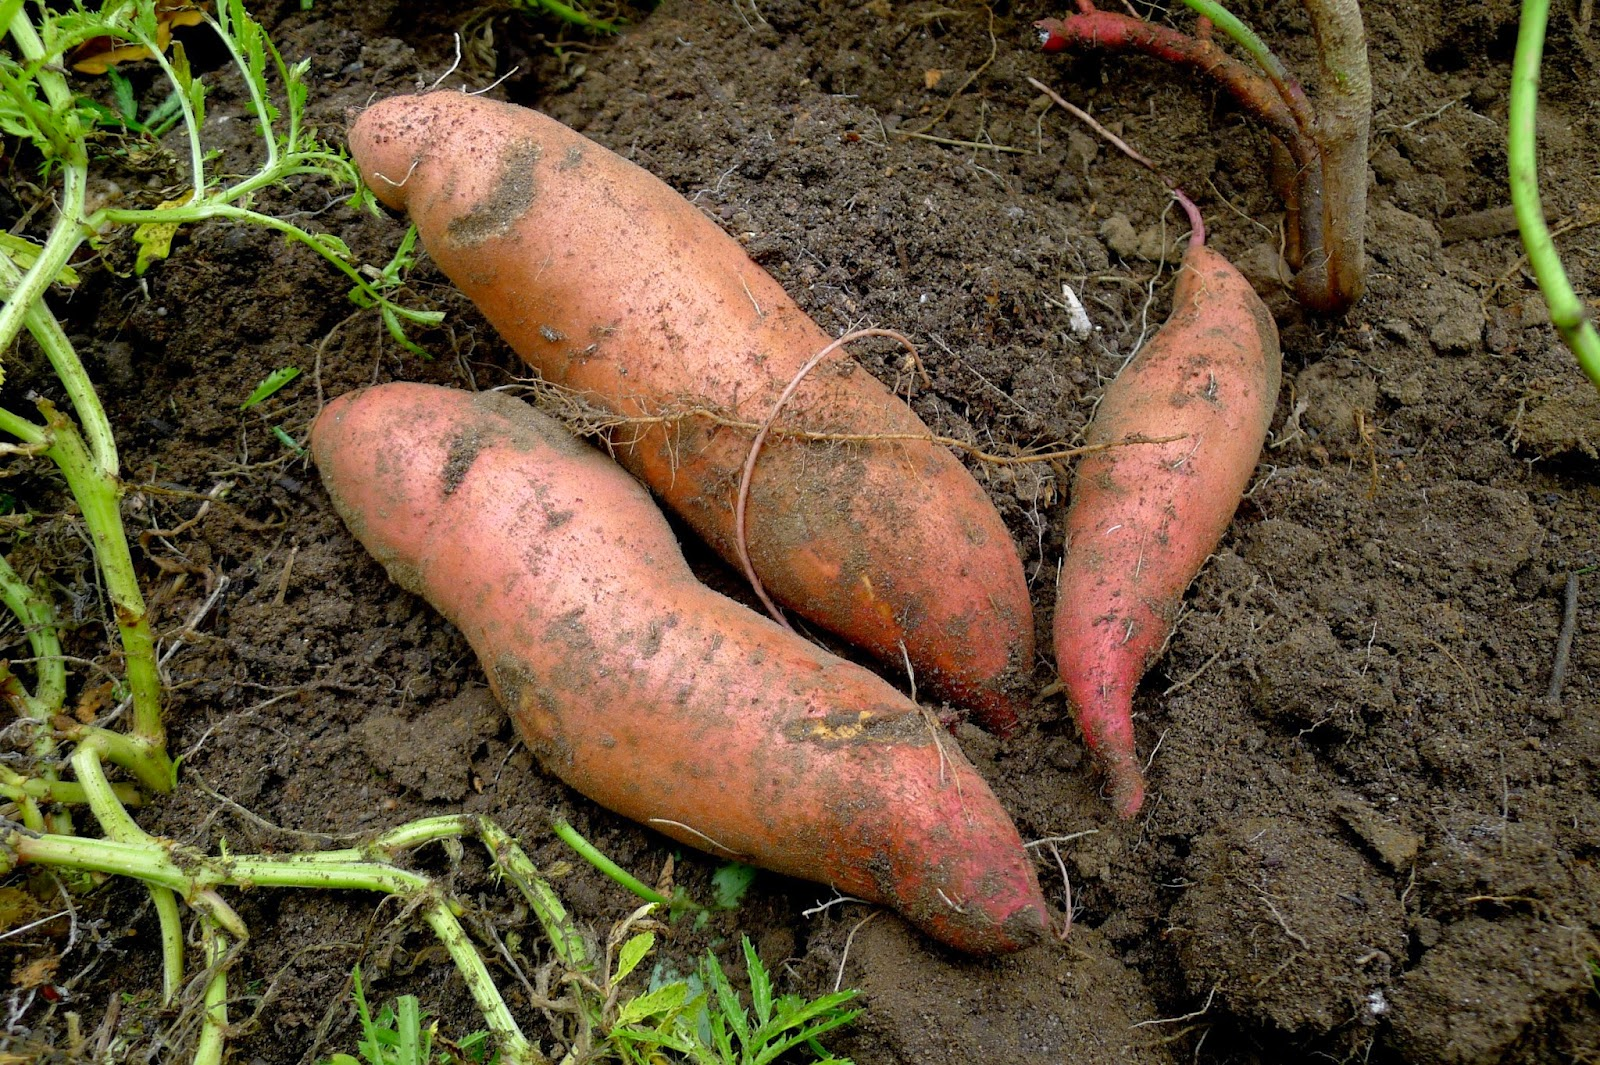 Beauregard Sweet Potatoes, urban farming, gardening, curing sweet potatoes